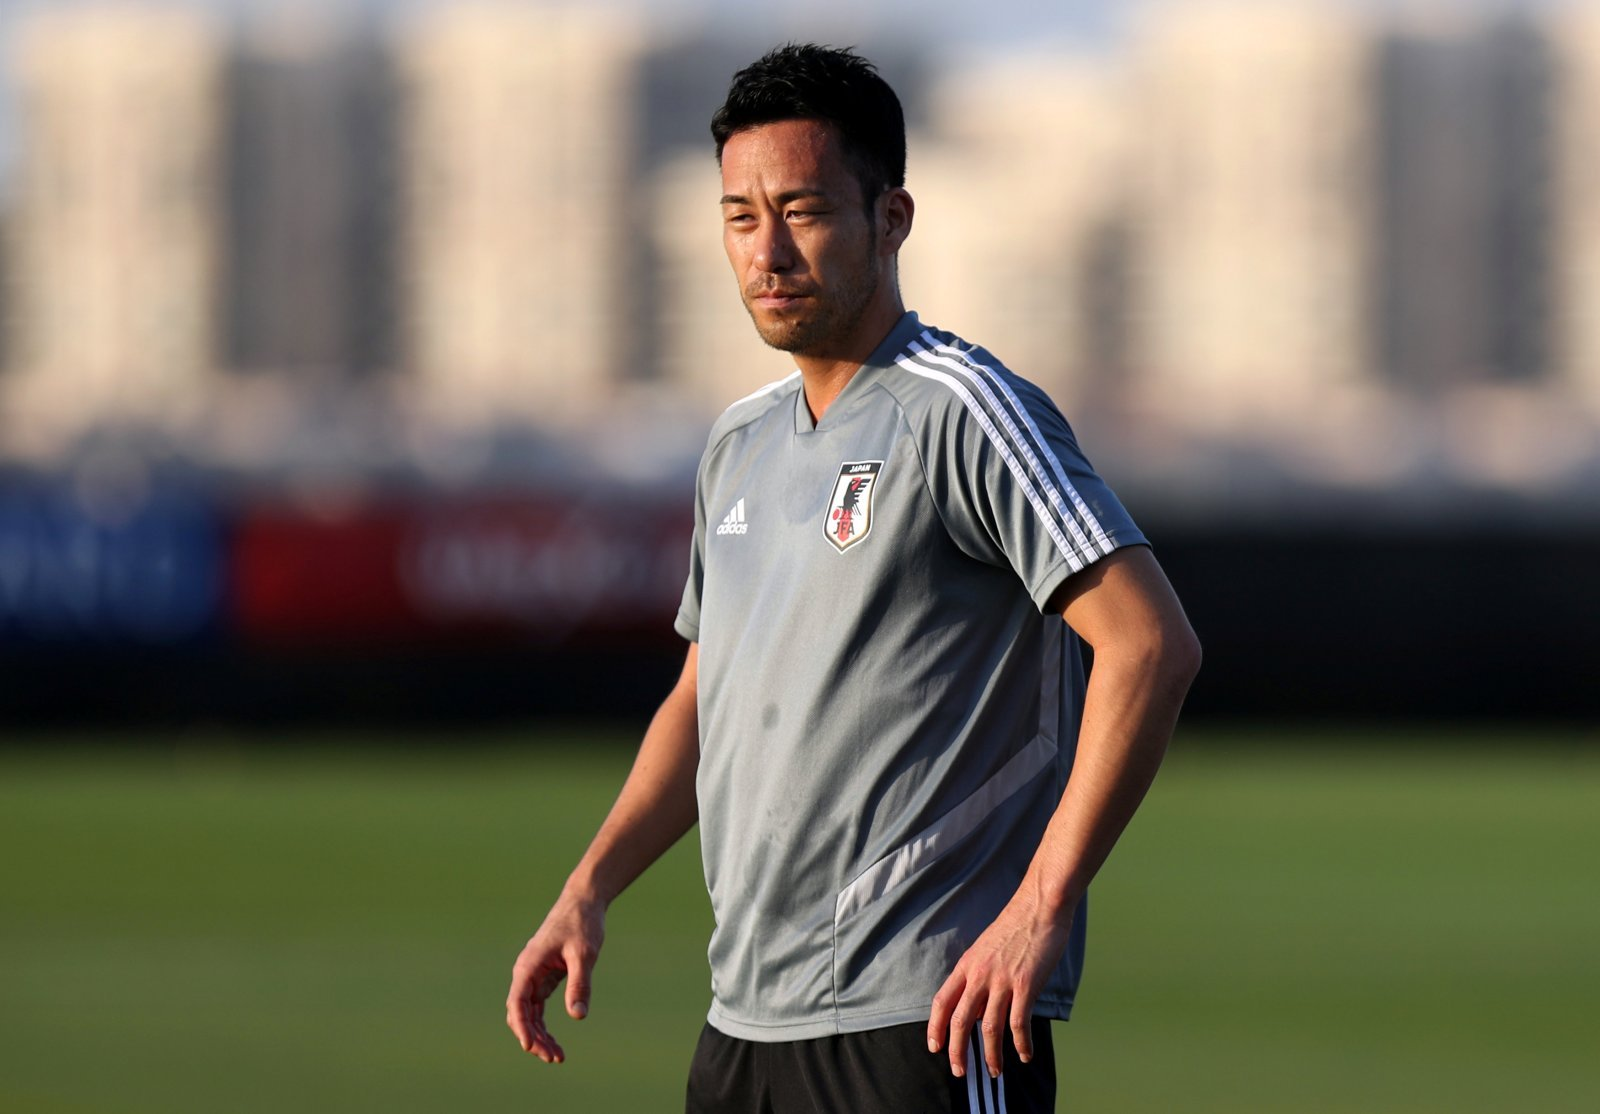 Yoshida needs to replace leaky Jack Stephens in defence to rescue Saints' season